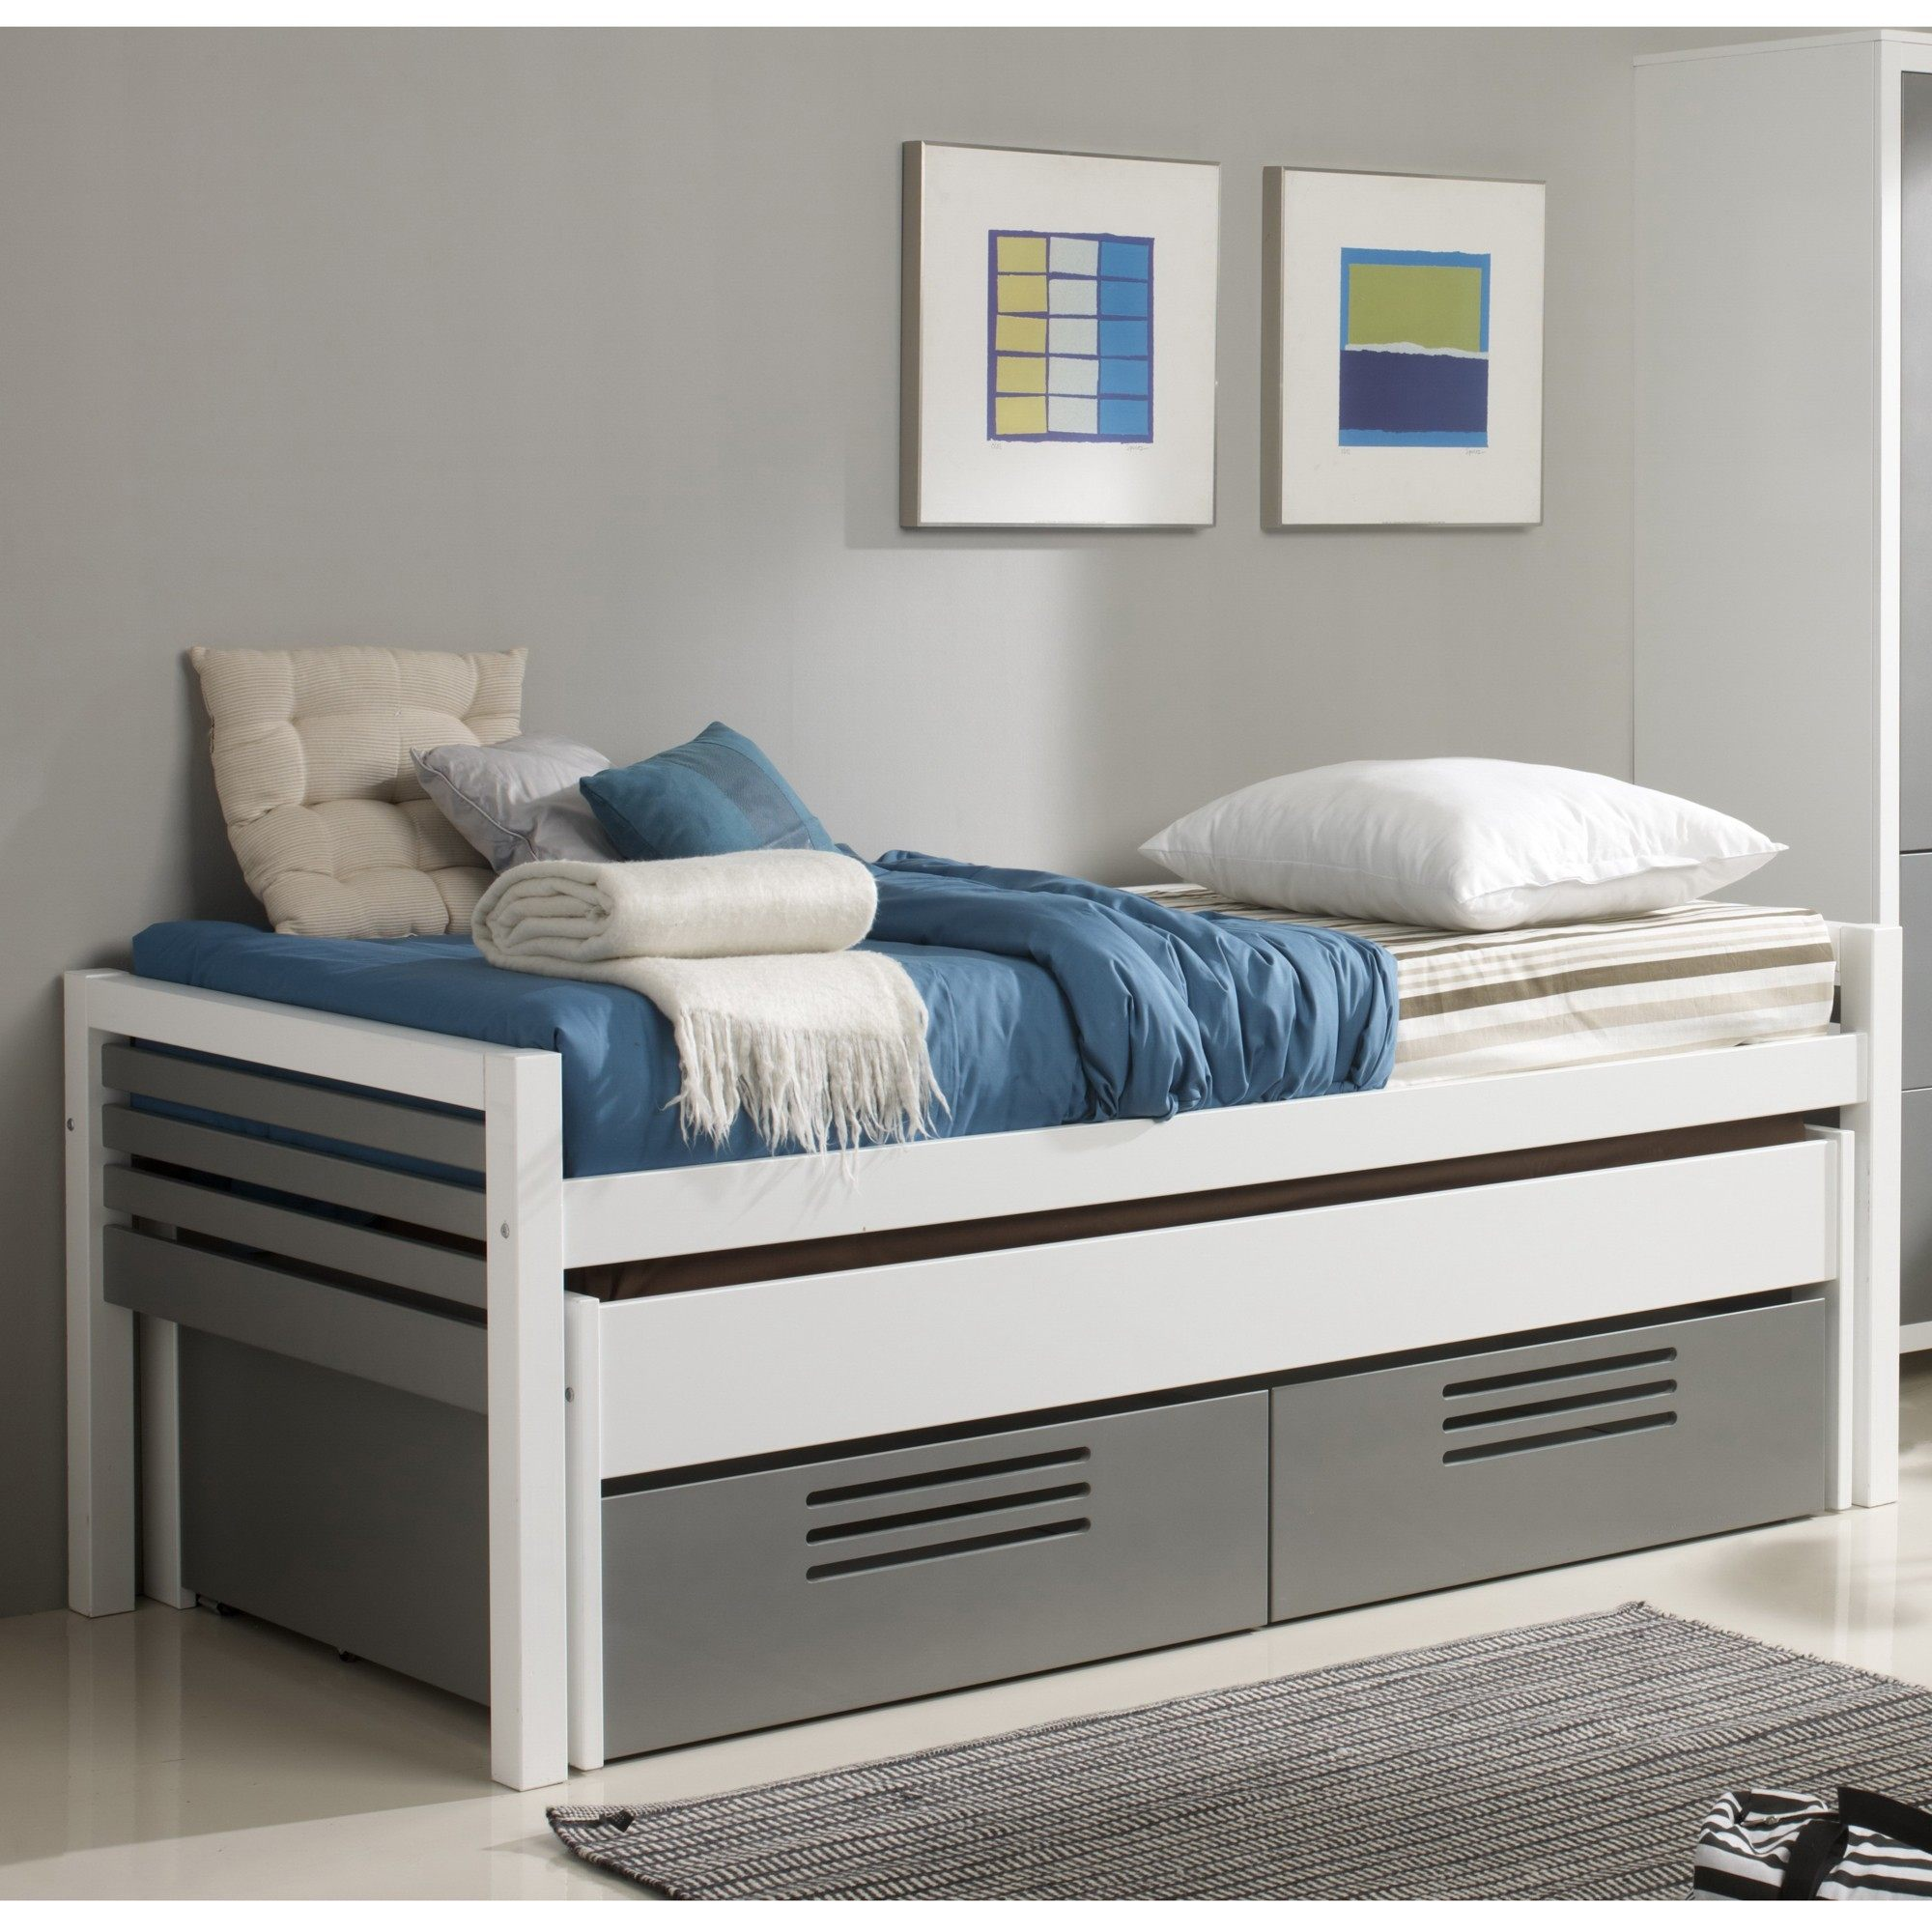 Lit Blanc 160×200 De Luxe Banc De Lit but Beautiful but Lit 27 sommier Electrique Ikea Coffre